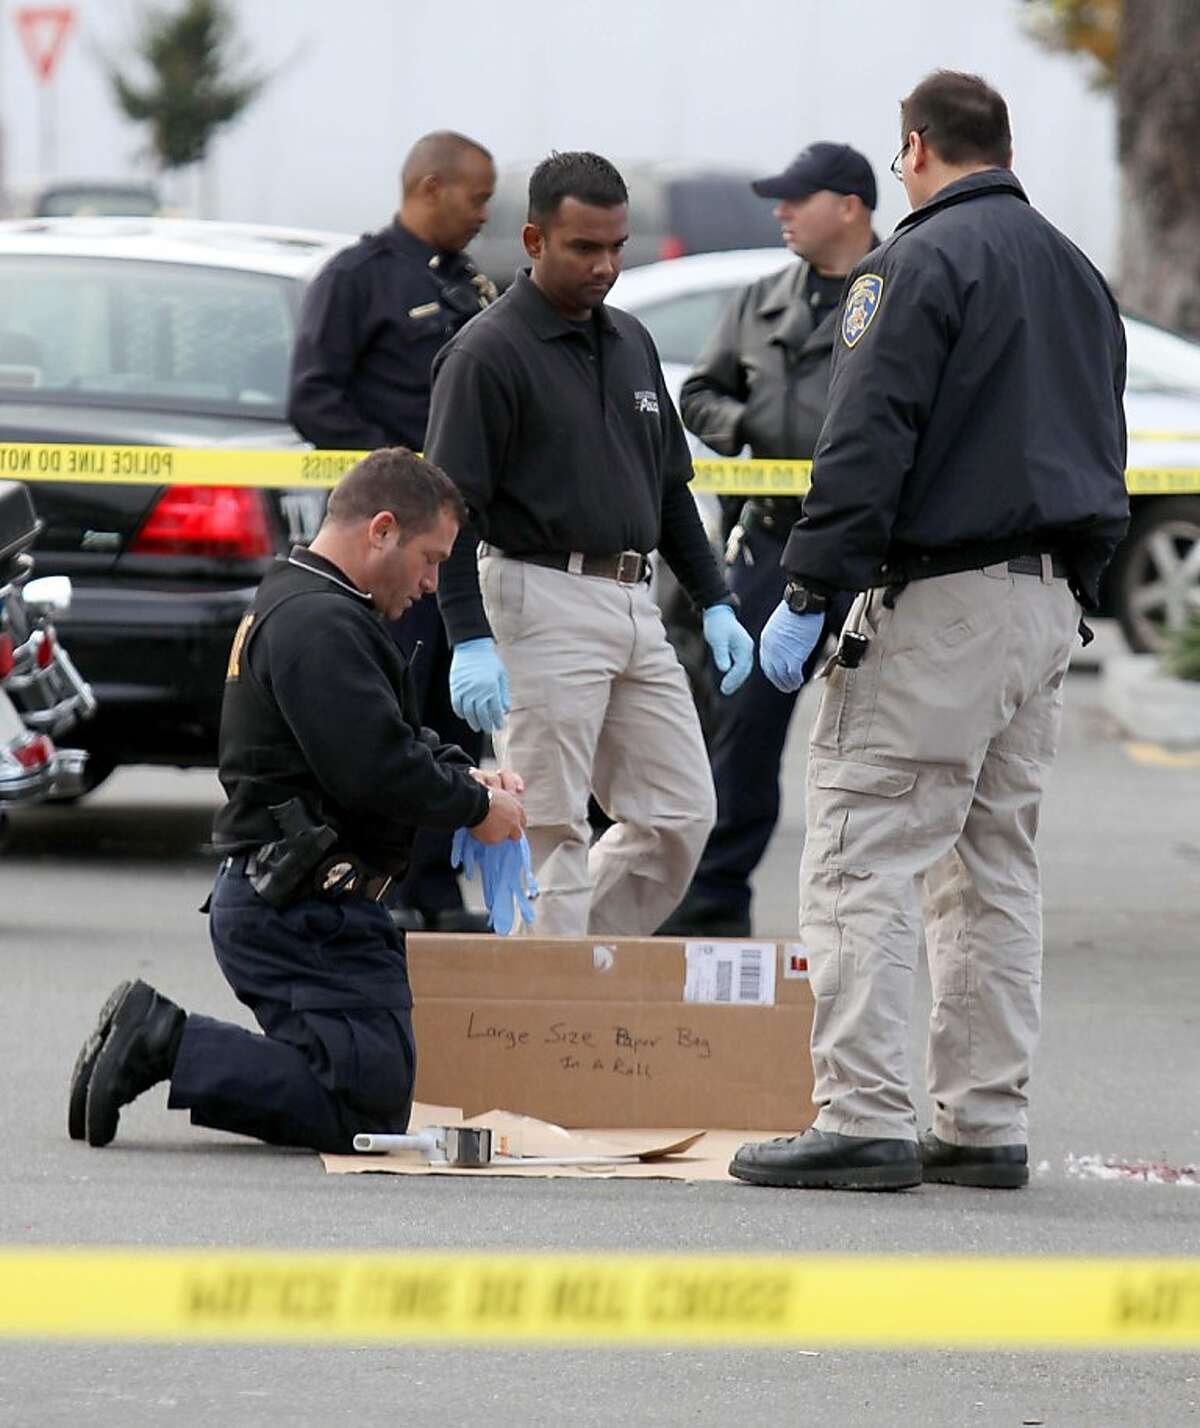 San Leandro police officers gather evidence at the scene of a shooting at Wal-Mart on Hesperian Boulevard, Friday, Nov. 25, 2011, in San Leandro, Calif. Gunfire rang out about 1:50 a.m. and a man was shot in a robbery attempt. Despite major injuries, police said he was in stable condition. (AP Photo/Bay Area News Group, Jane Tyska) MANDATORY CREDIT; MAGS OUT